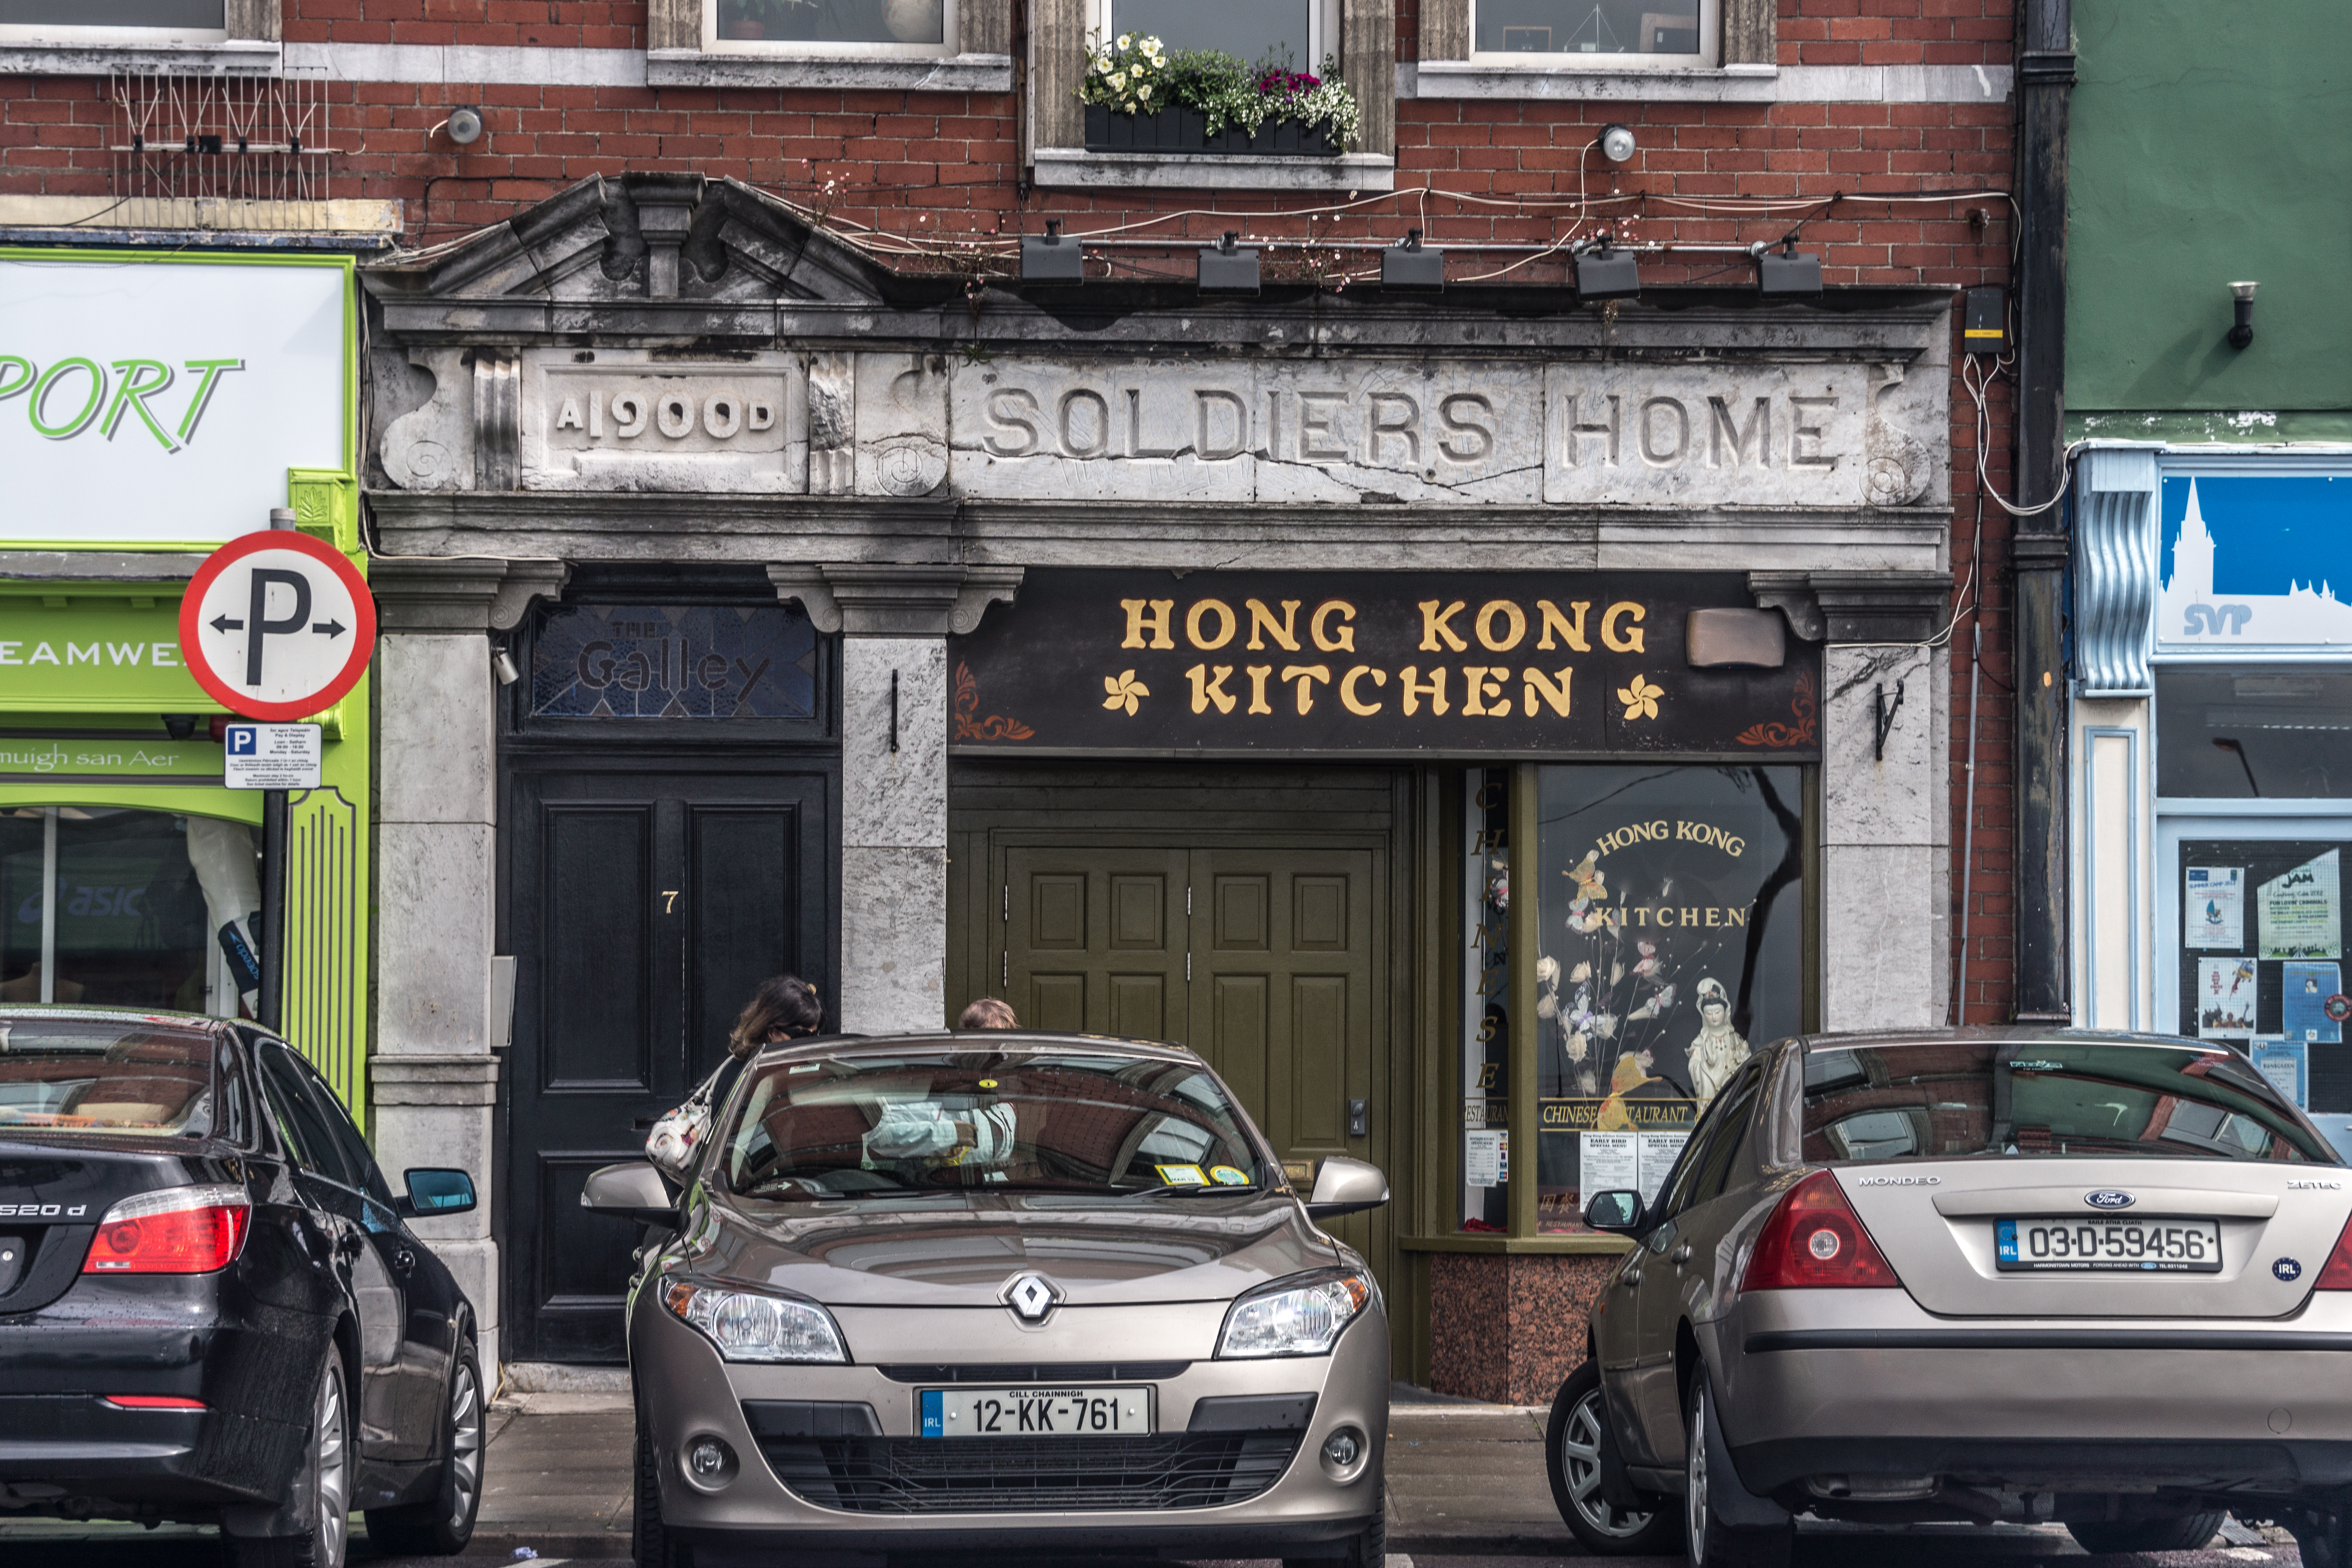 File Hong Kong Kitchen Chinese Restaurant Originally Soldiers Home 1900ad 7174118519 Jpg Wikimedia Commons